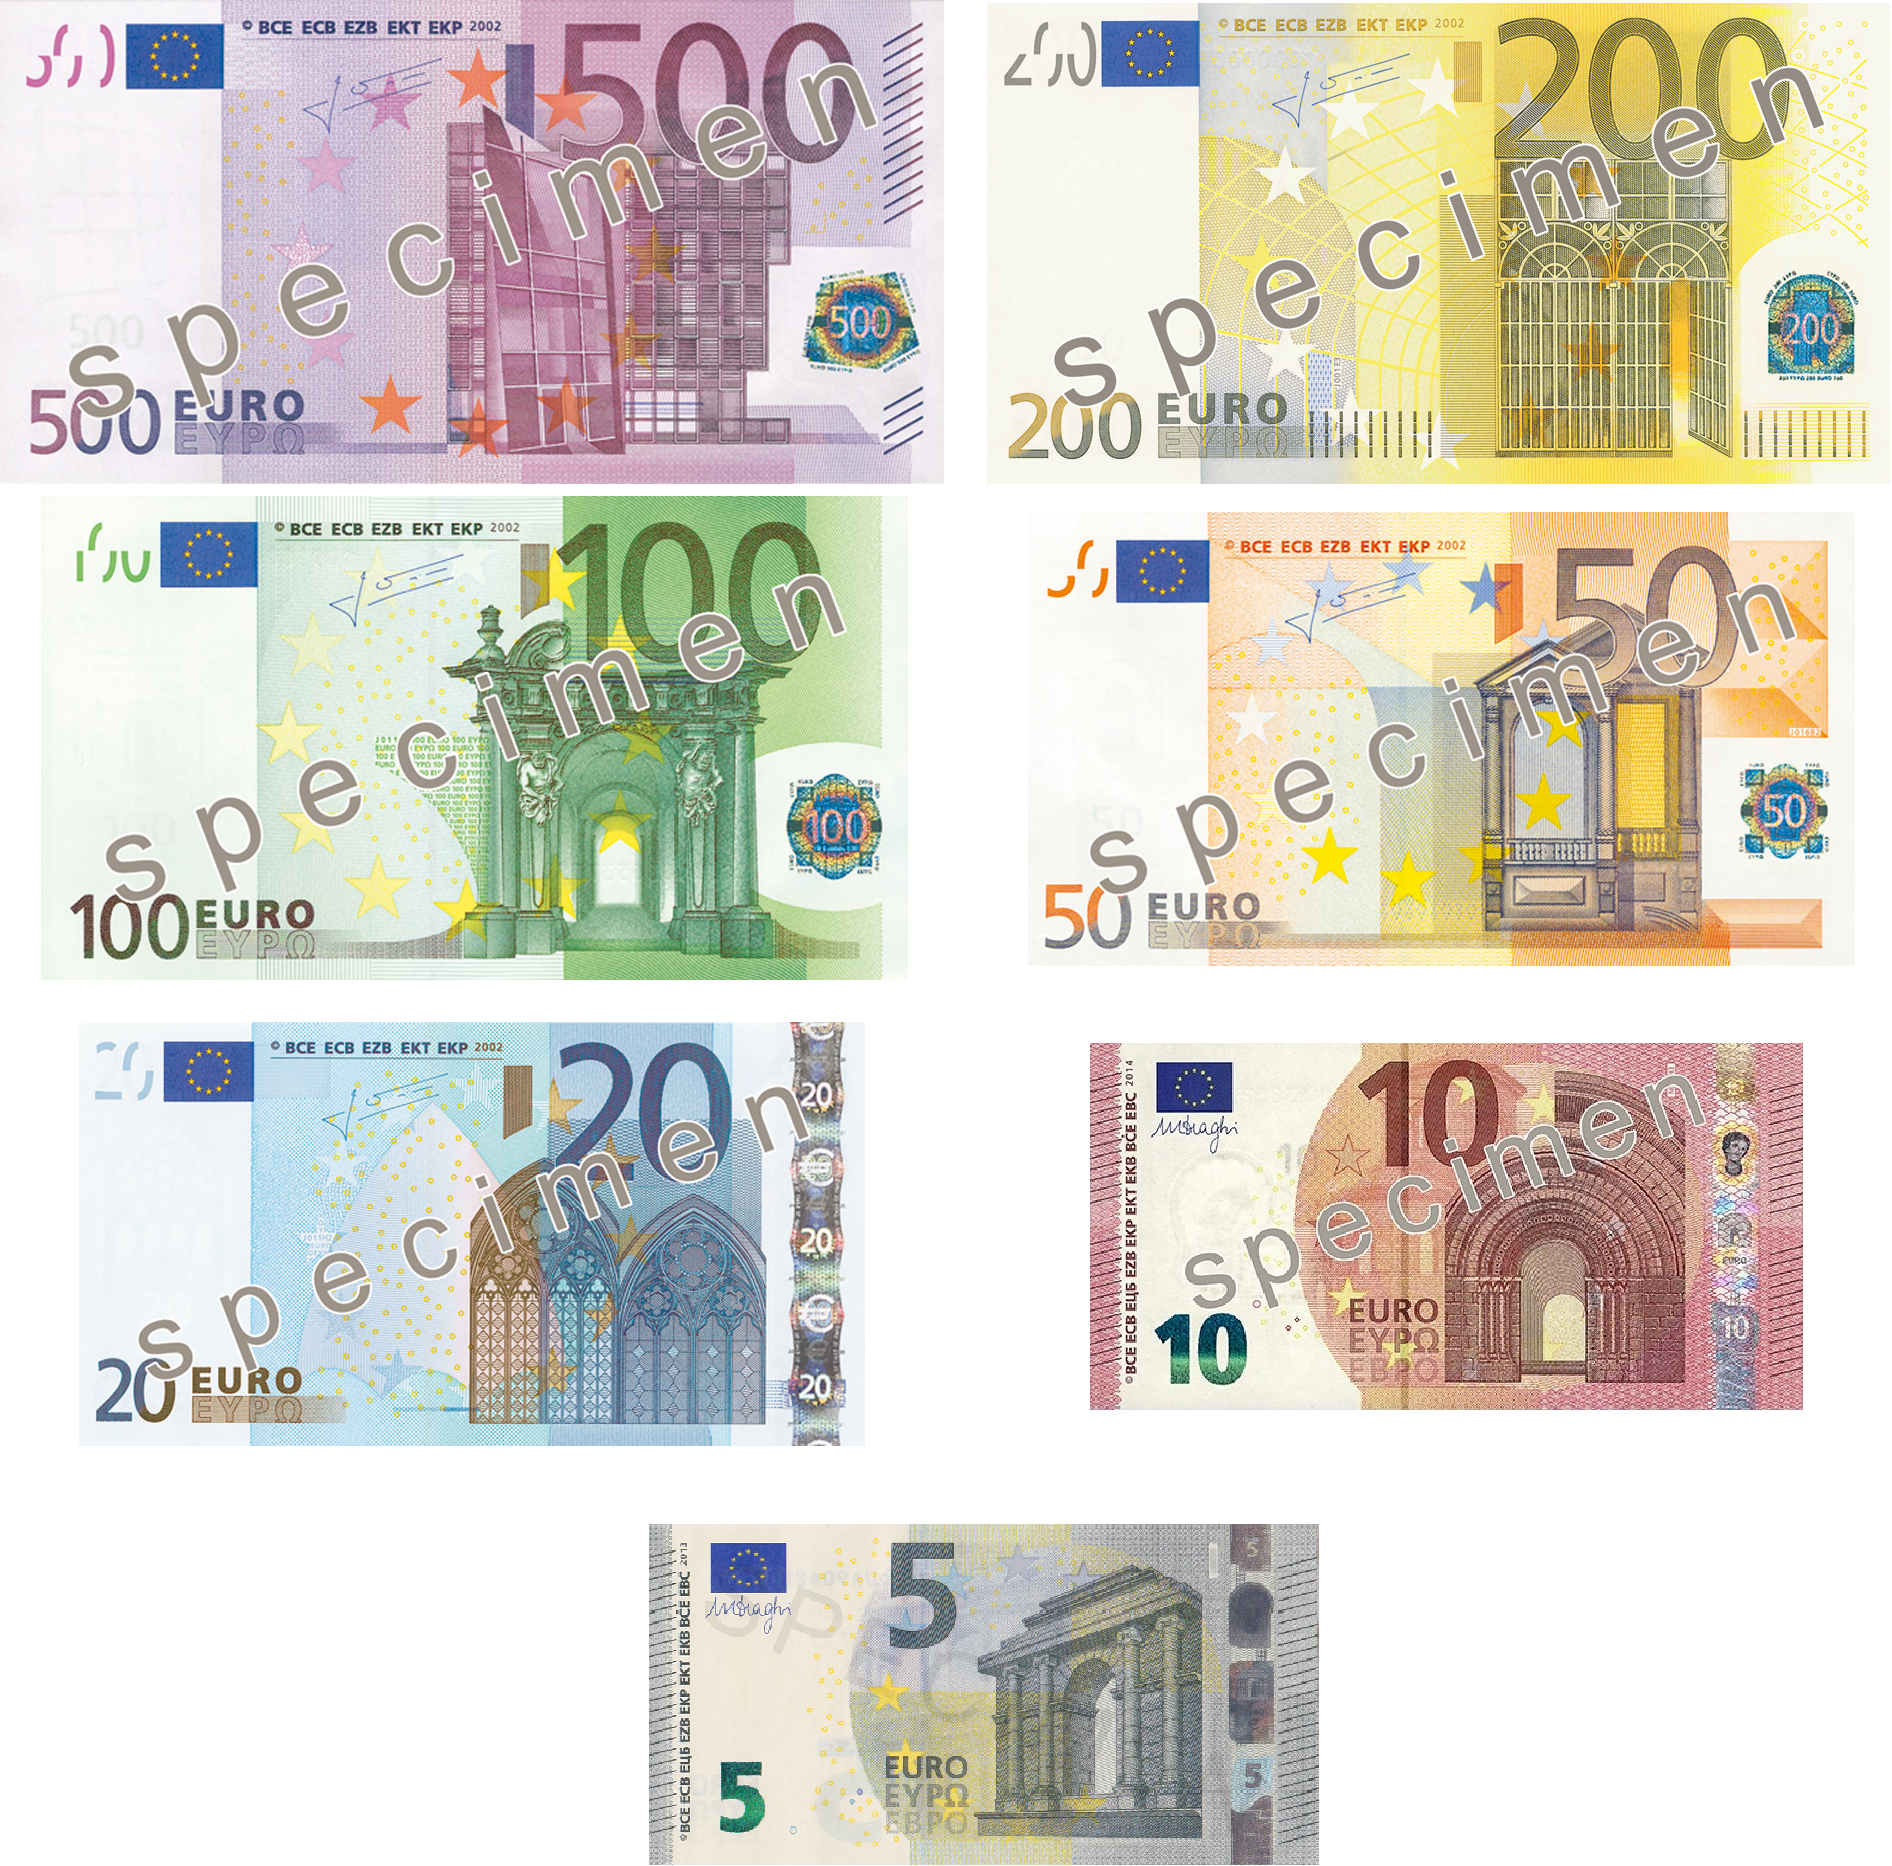 how to tell if 500 euro note is fake